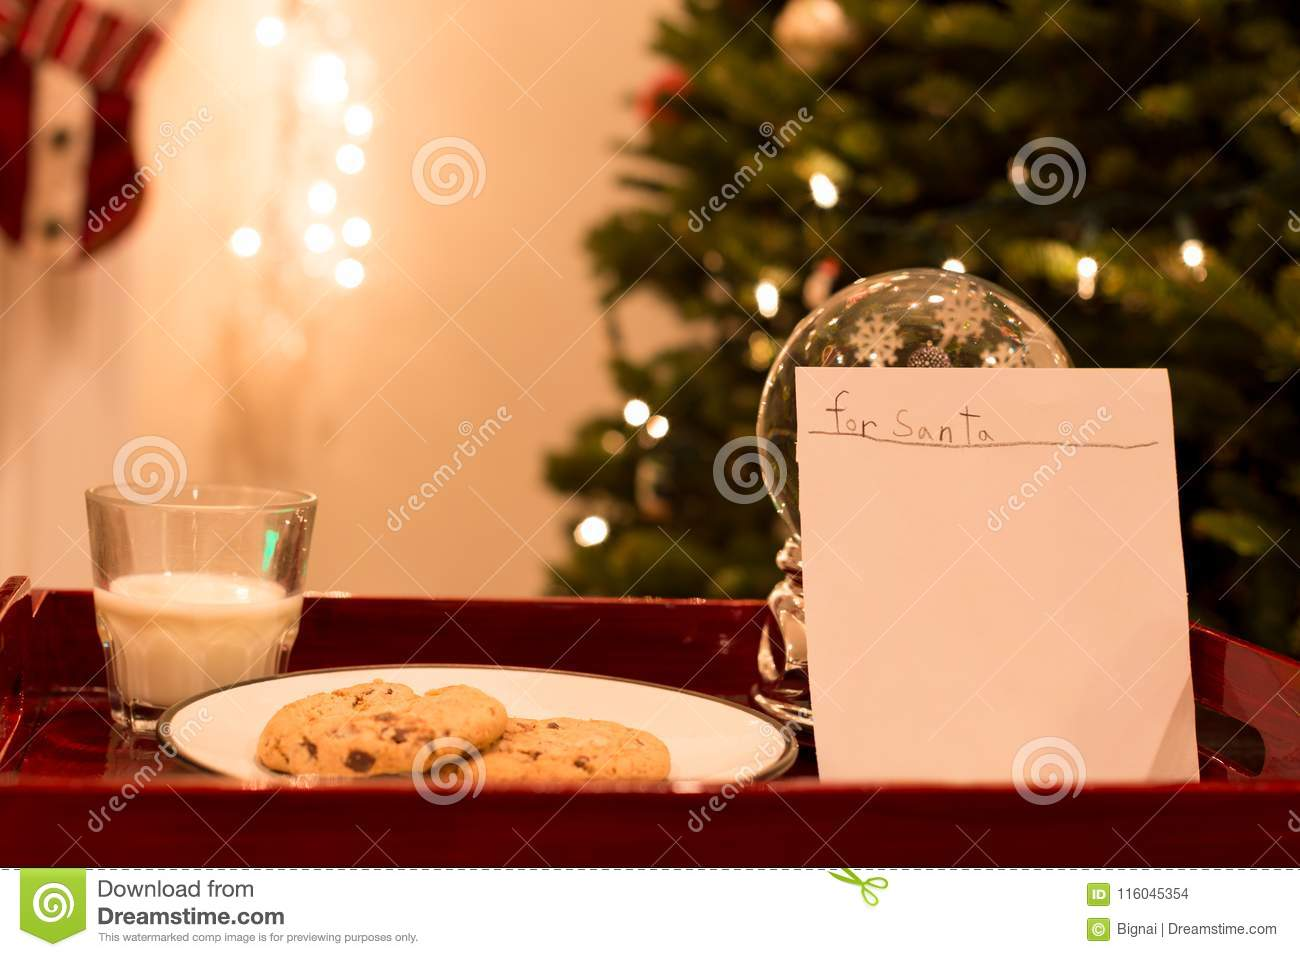 Letter For Santa With Cookies And Glass Of Milk Stock Photo Image